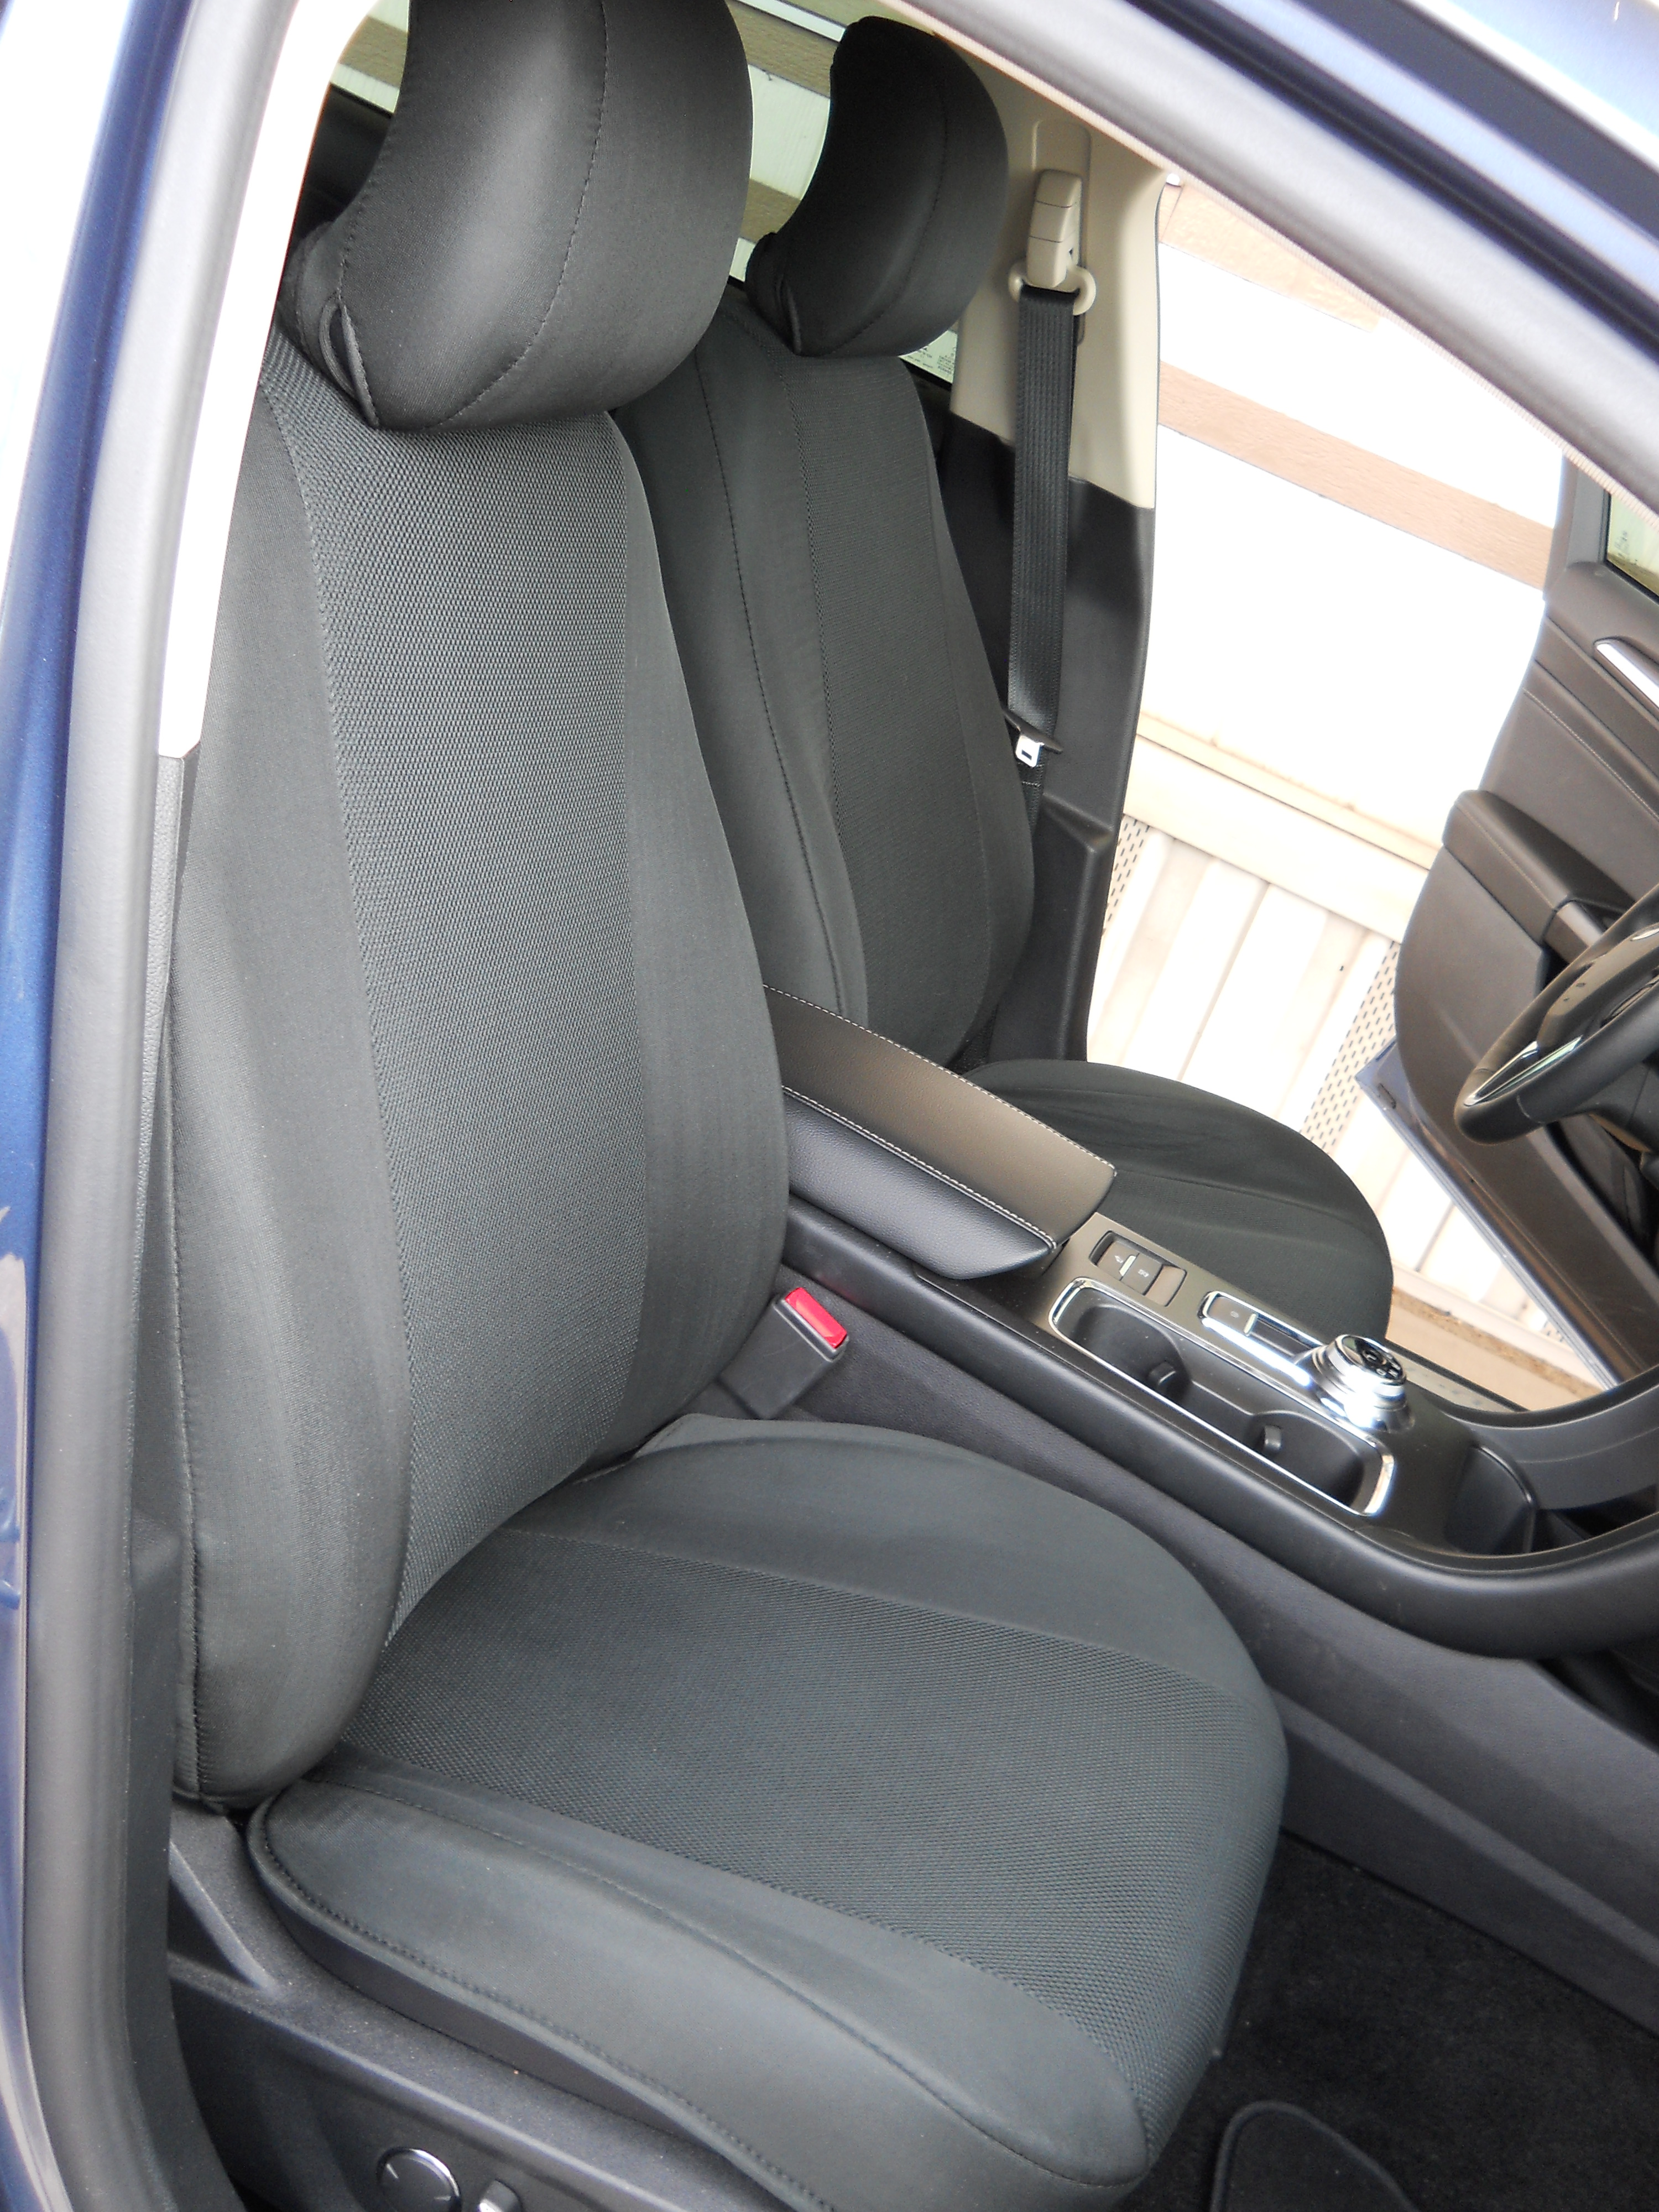 Mesh Seat Covers Breathable Form Fitting Material Free Shipping